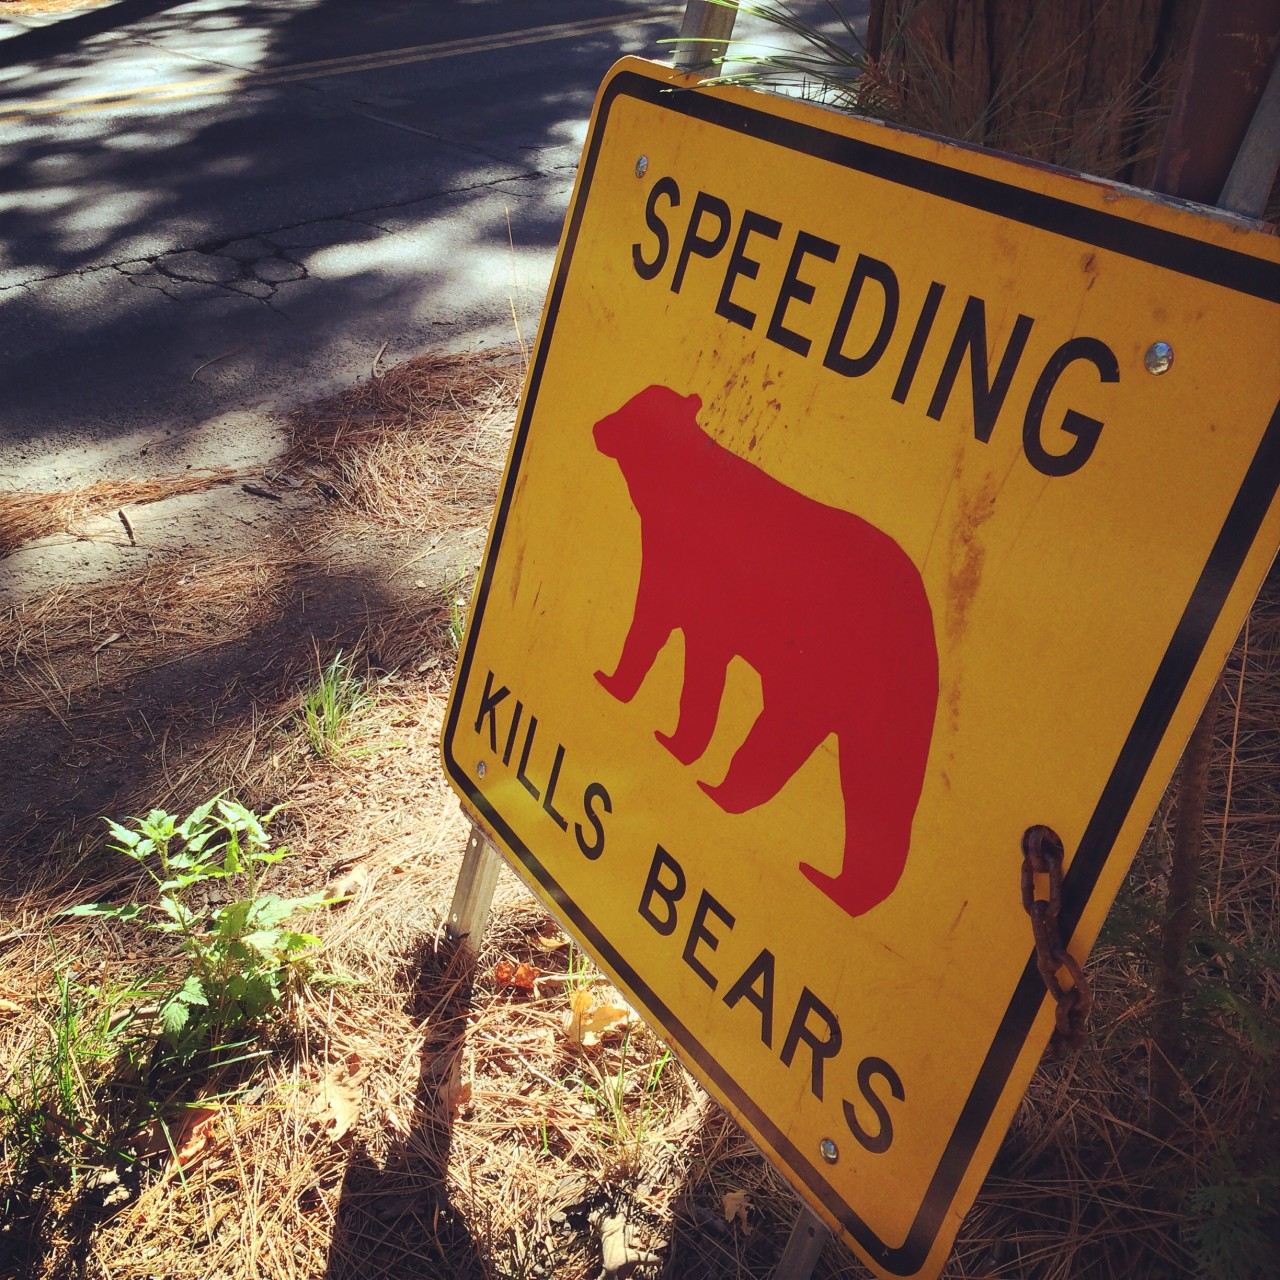 So cut that shit out. Every time you see this sign, it means a bear was hit by car there. :(